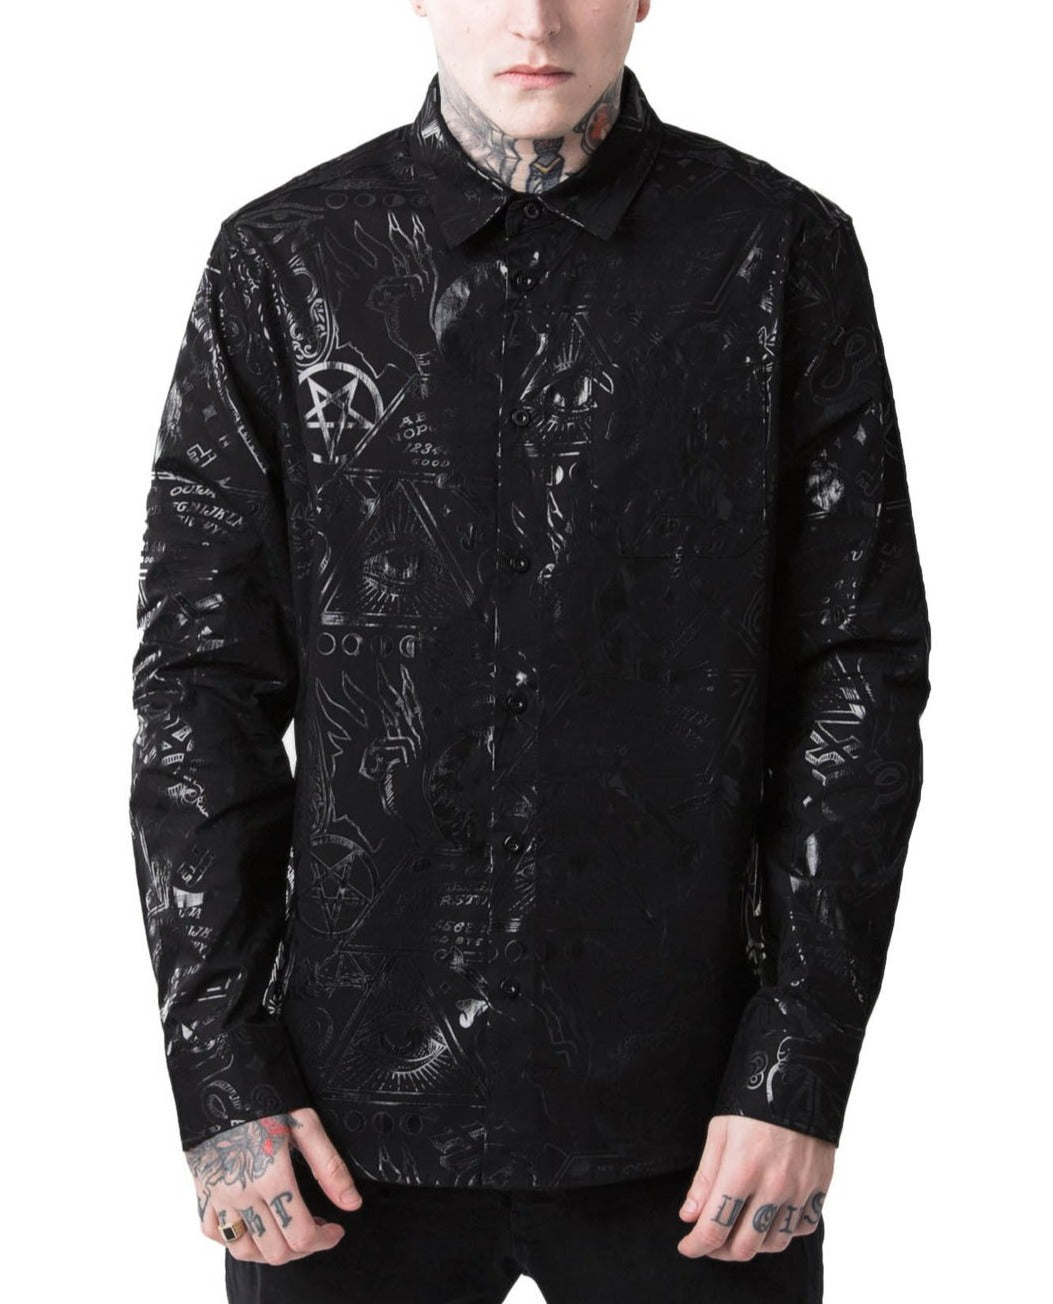 Grave Boy Button-Up Shirt